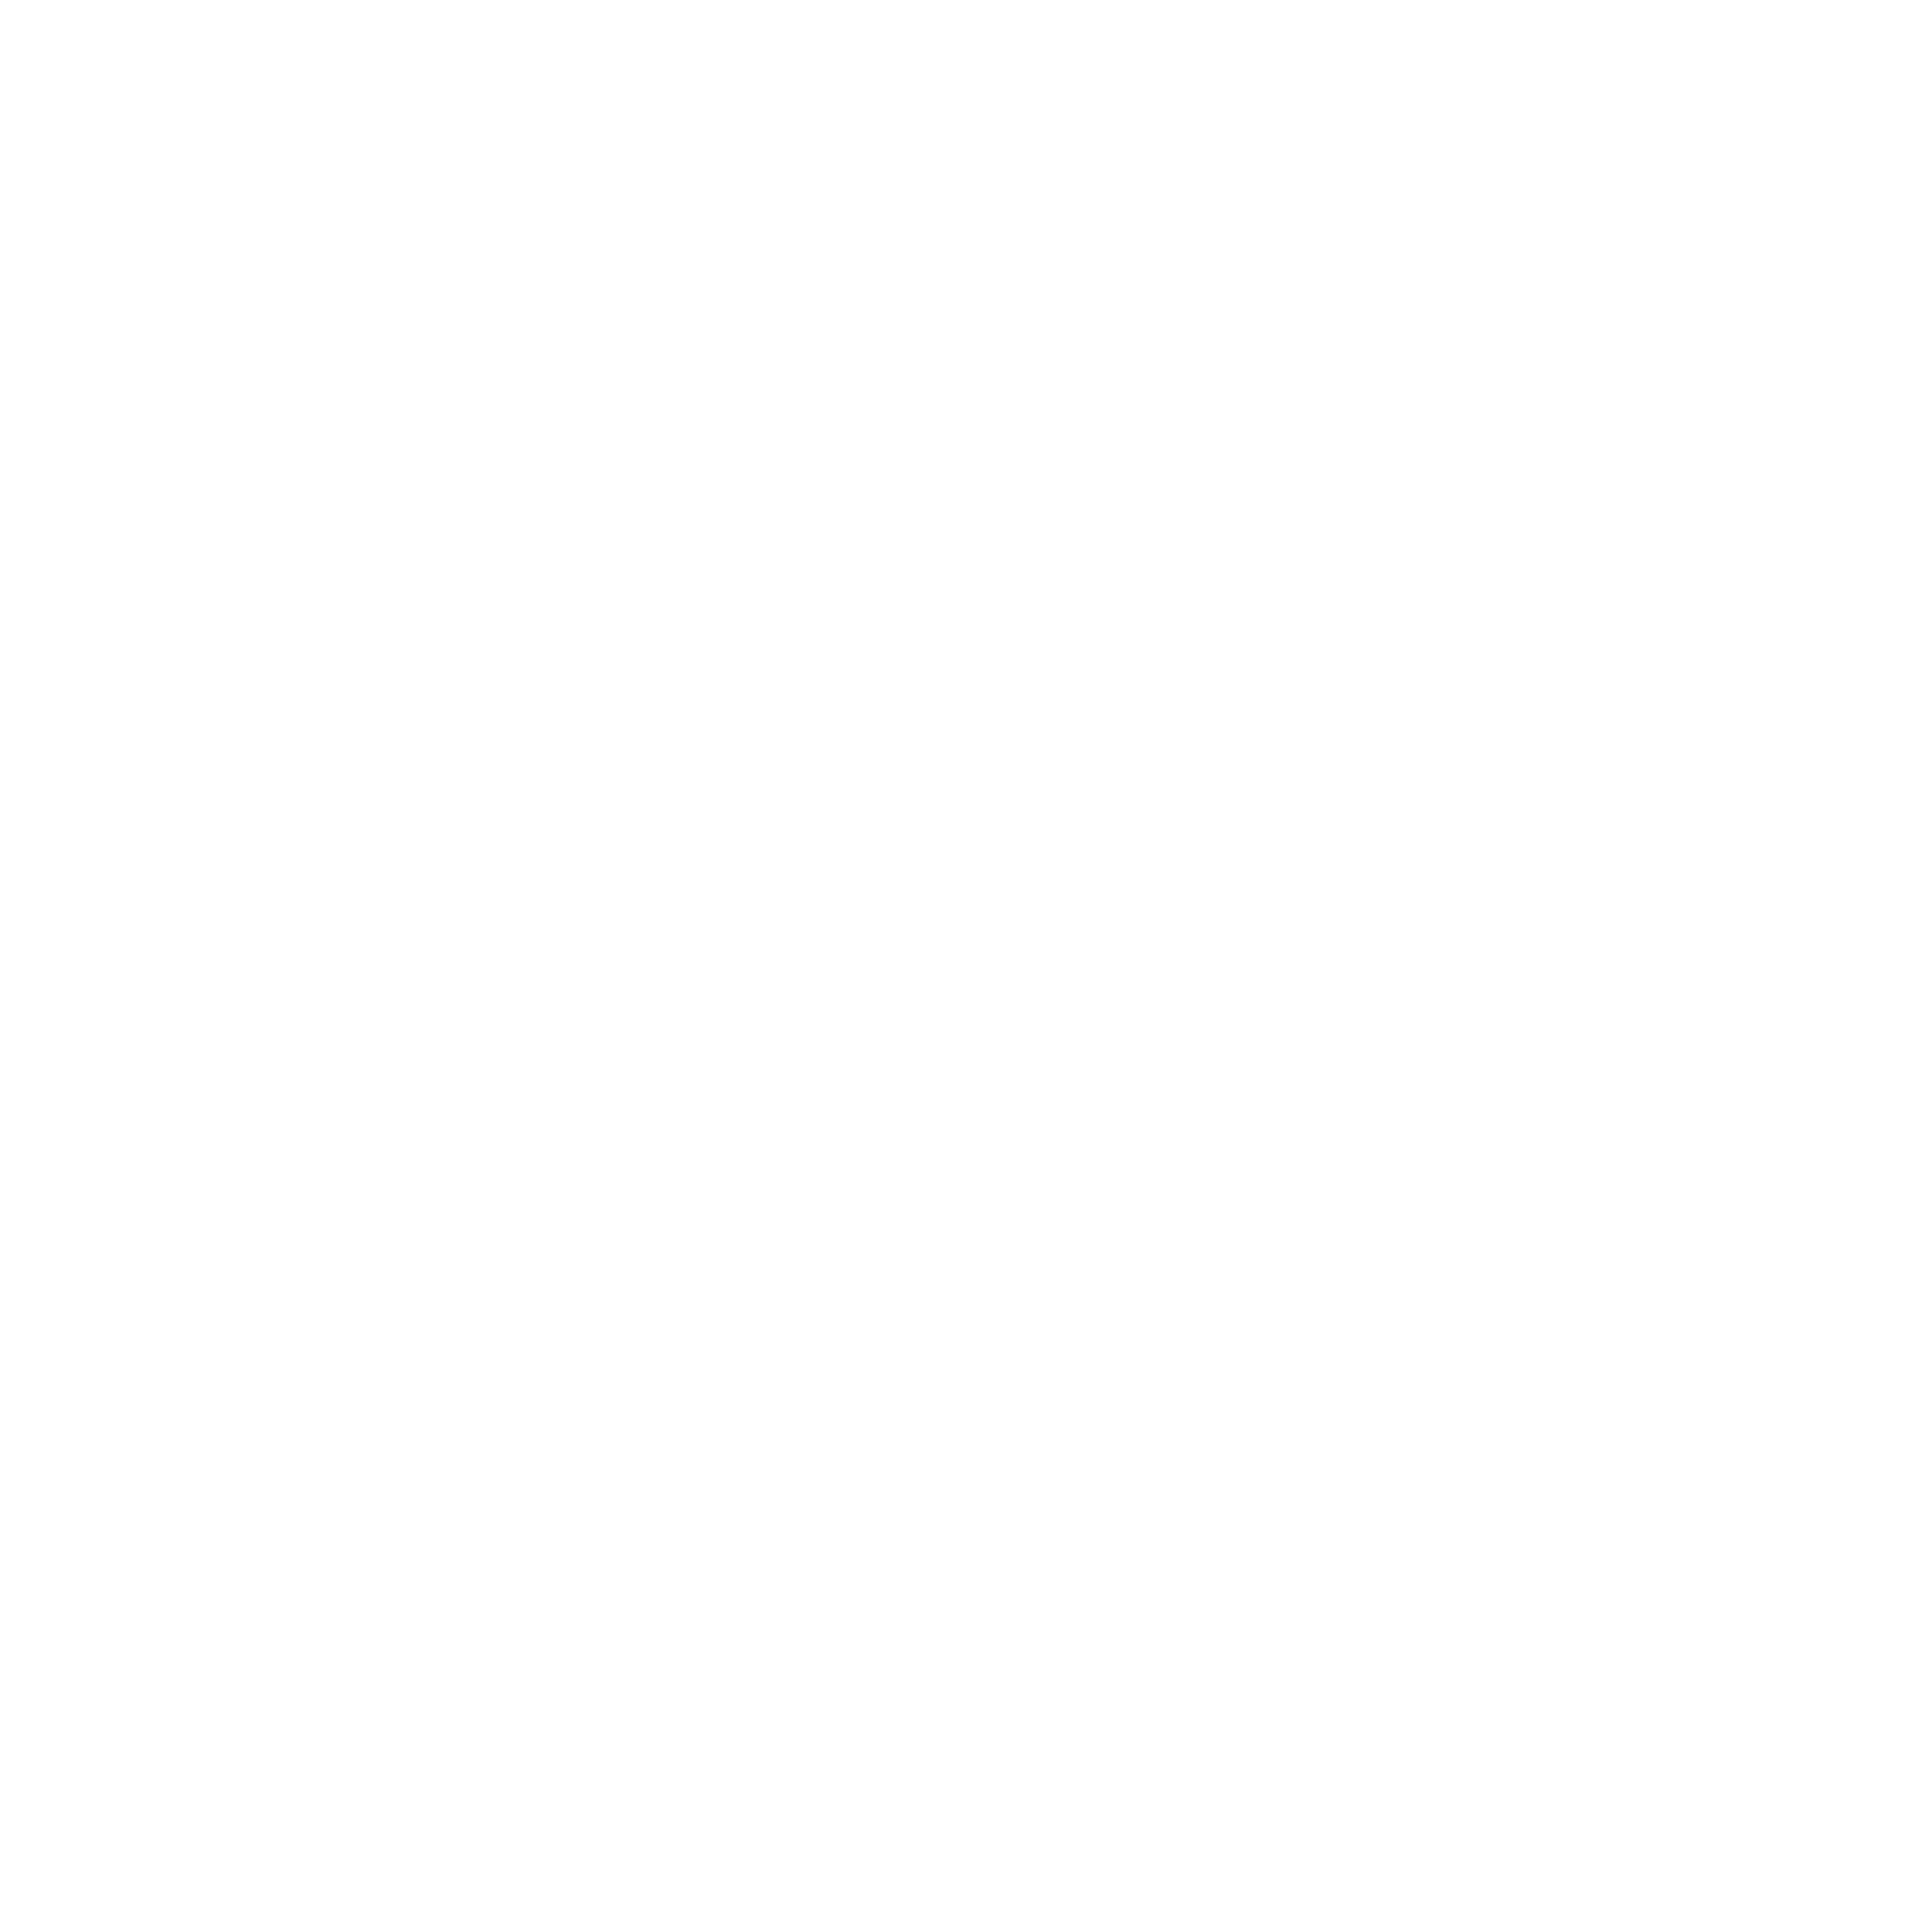 A map of the UK that highlights Enagland, Wales and Northern Ireland